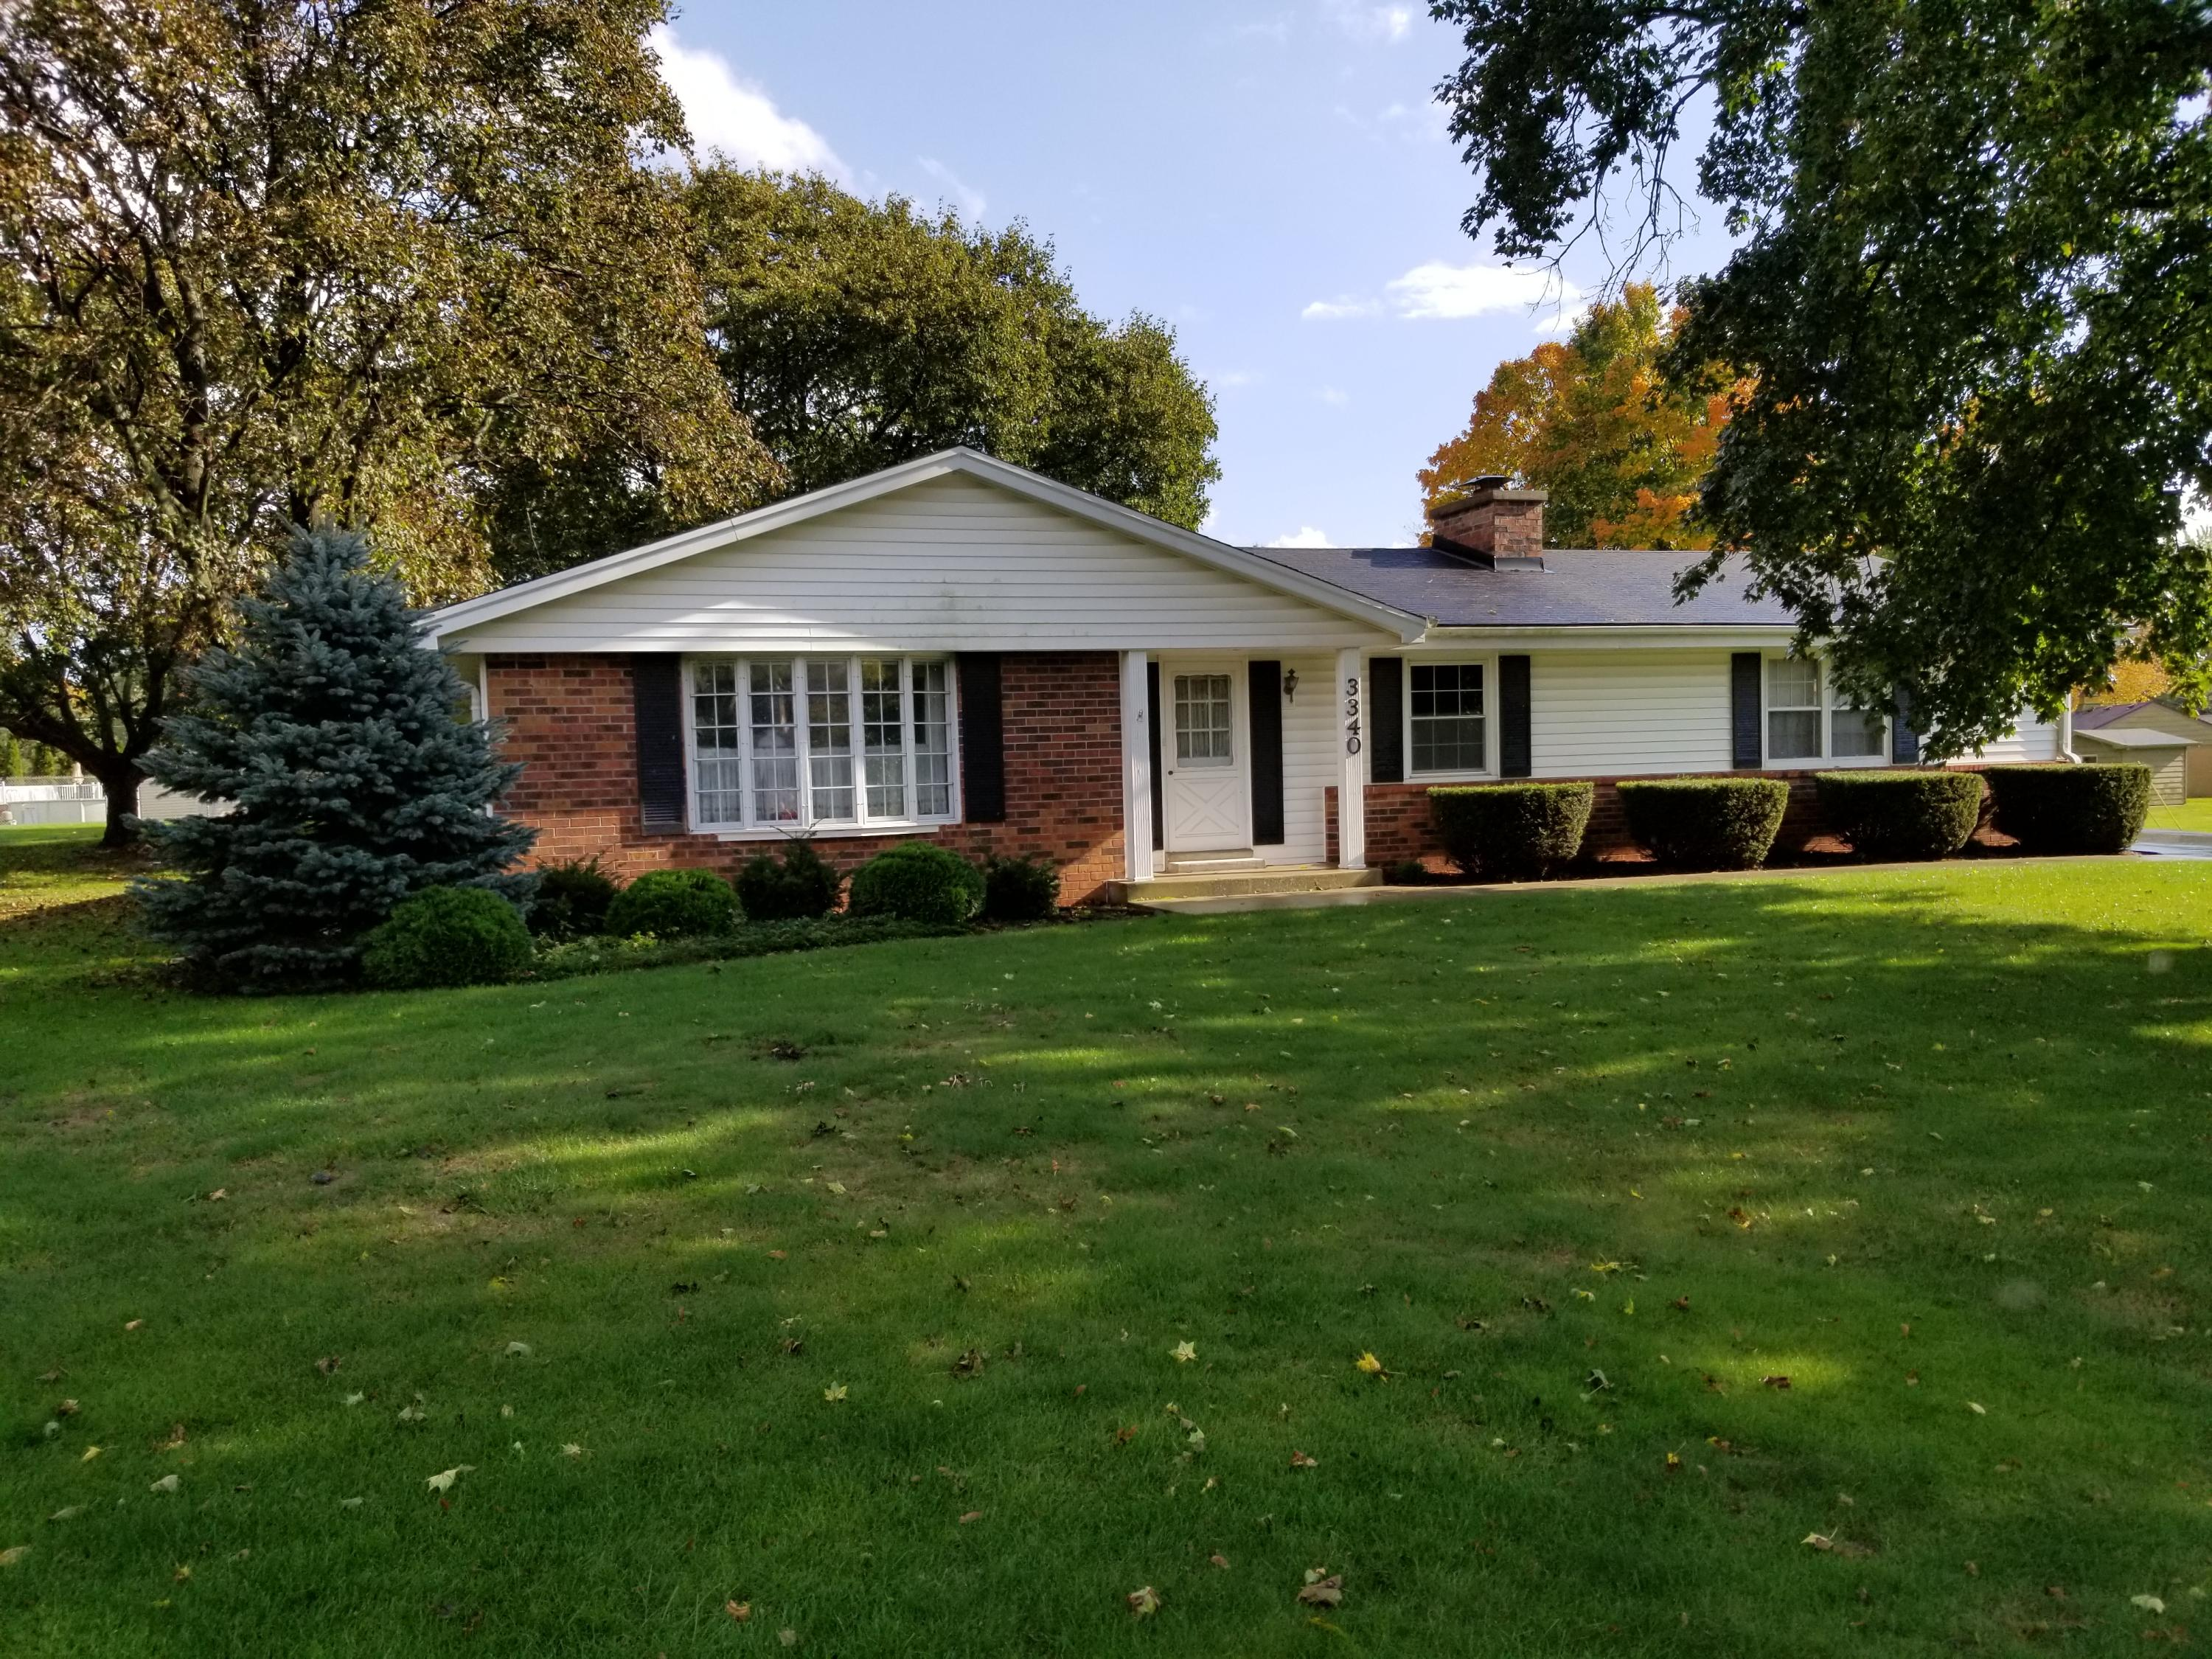 3340 Cardinal Dr, Brookfield, Wisconsin 53005, 3 Bedrooms Bedrooms, ,2 BathroomsBathrooms,Single-Family,For Sale,Cardinal Dr,1609985